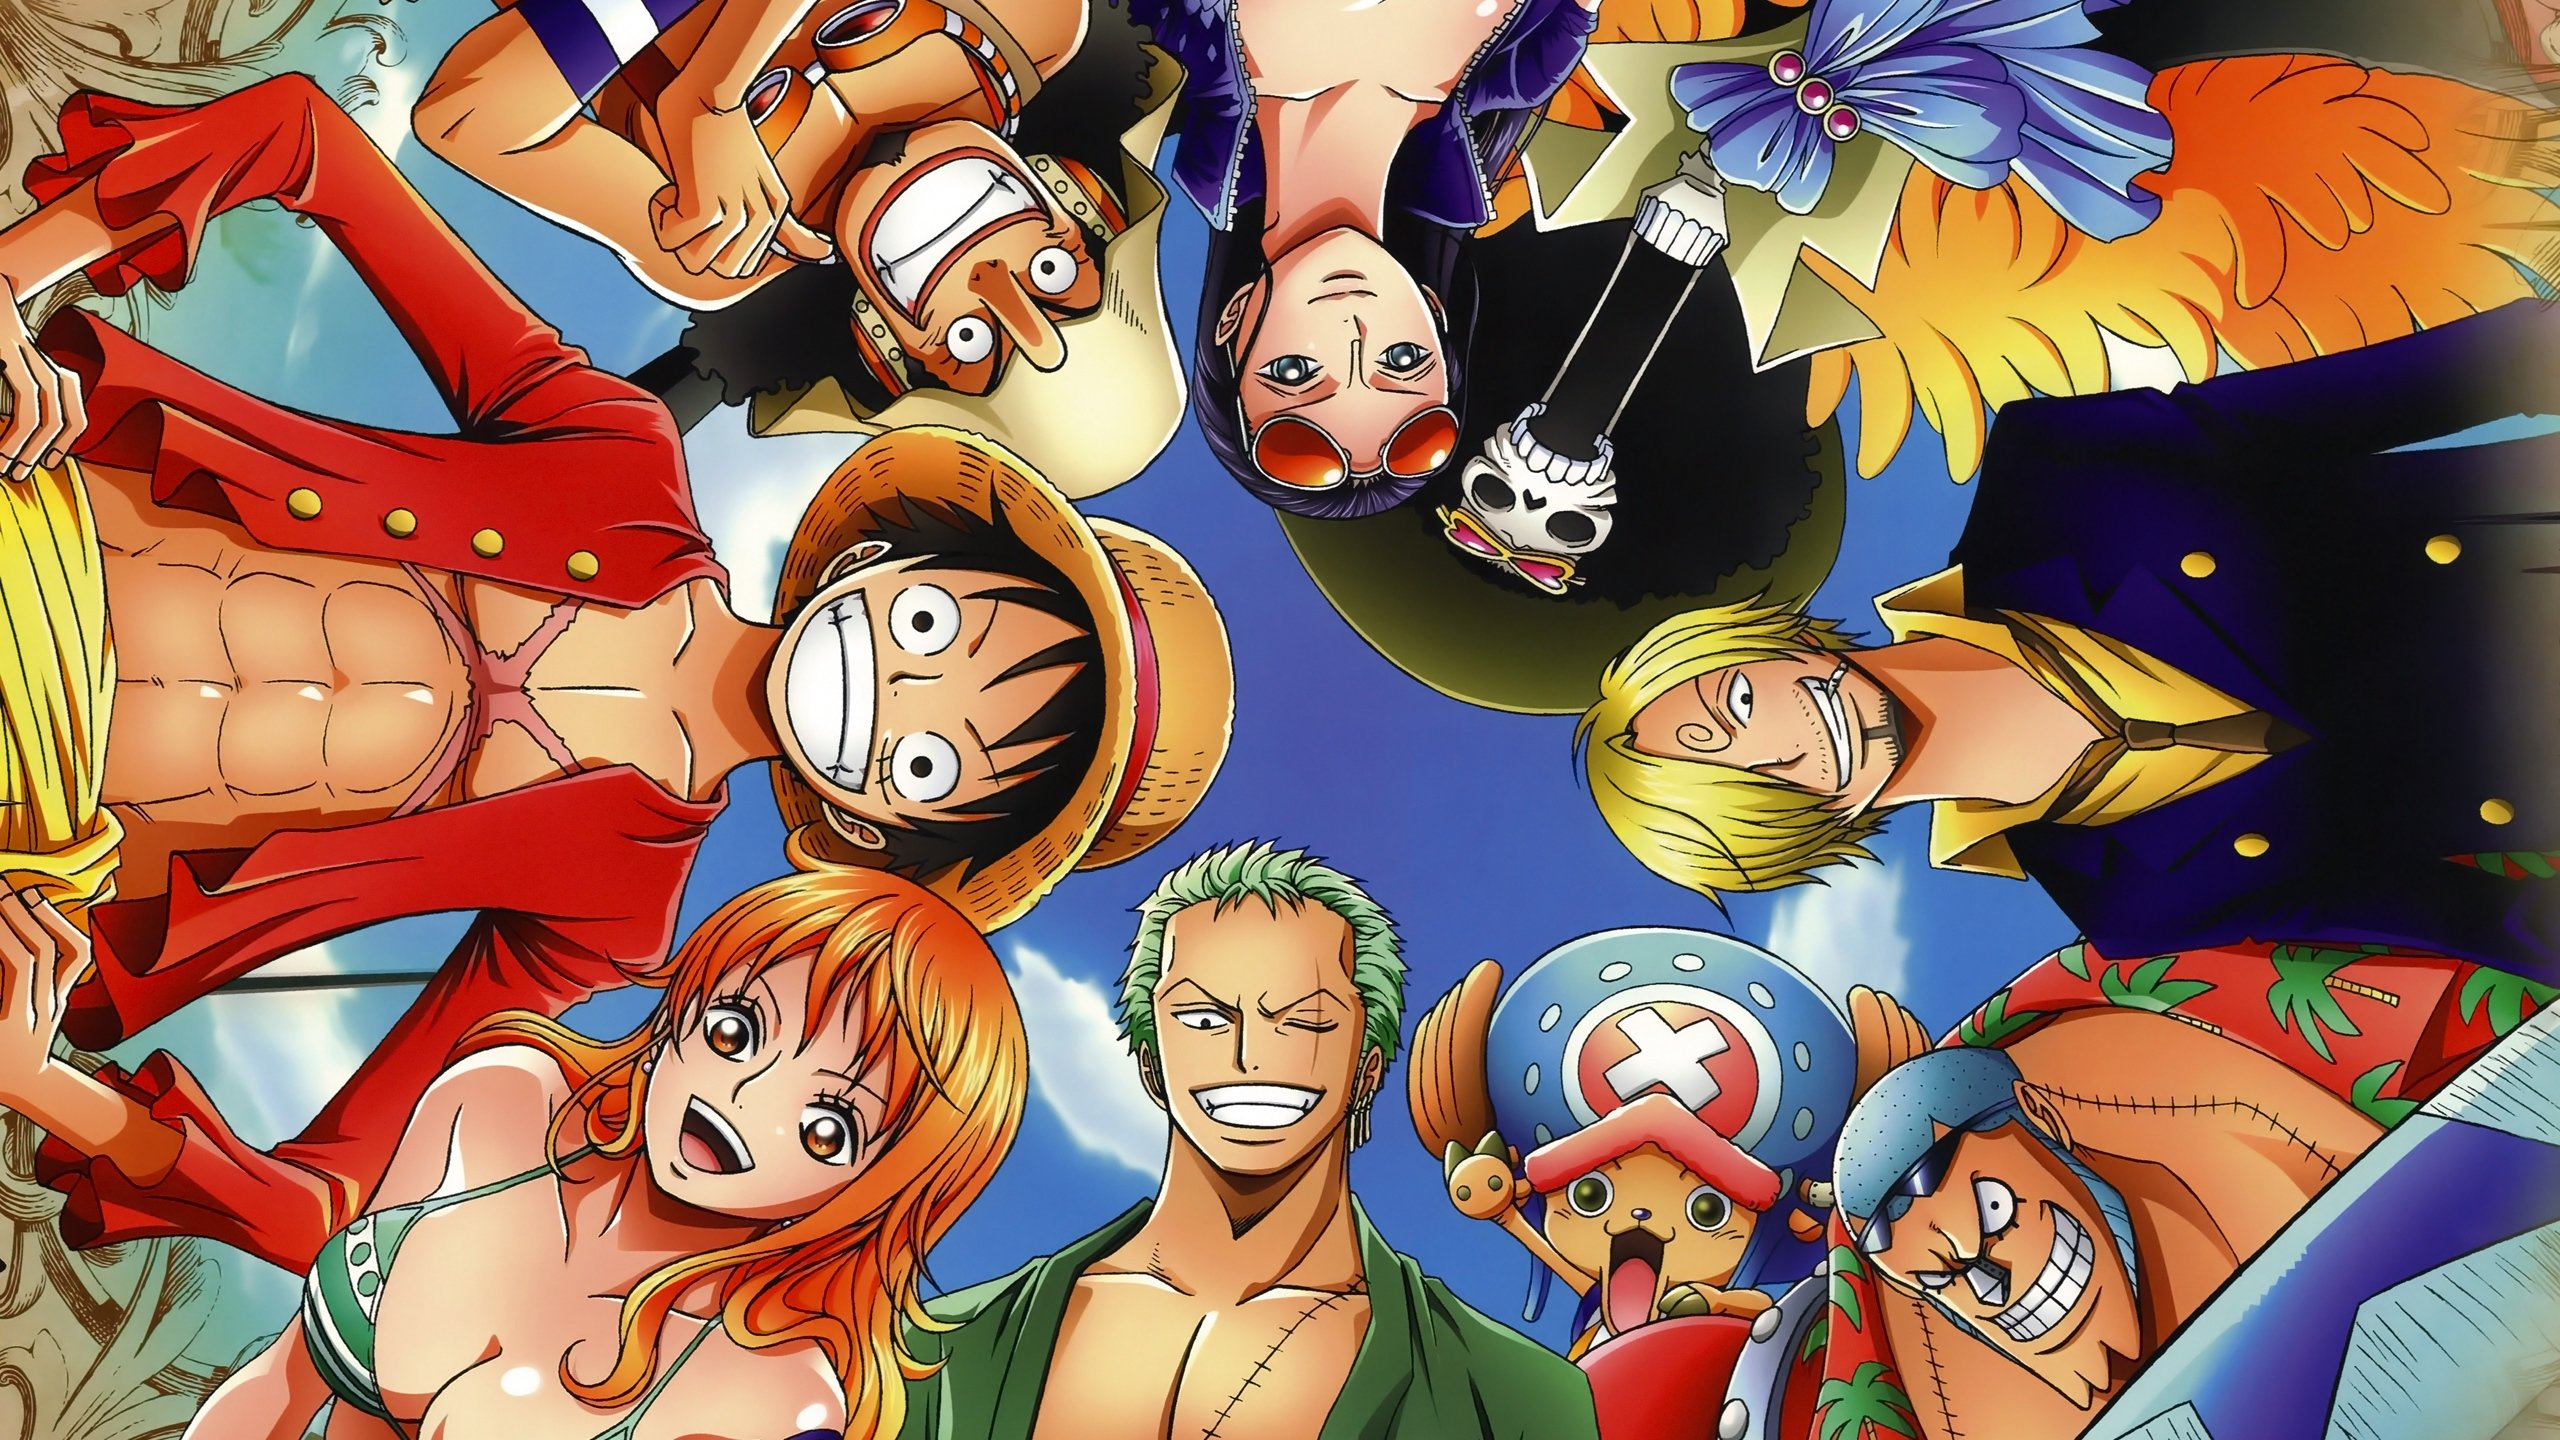 Free download One Piece background ID:313872 hd 2560x1440 for computer